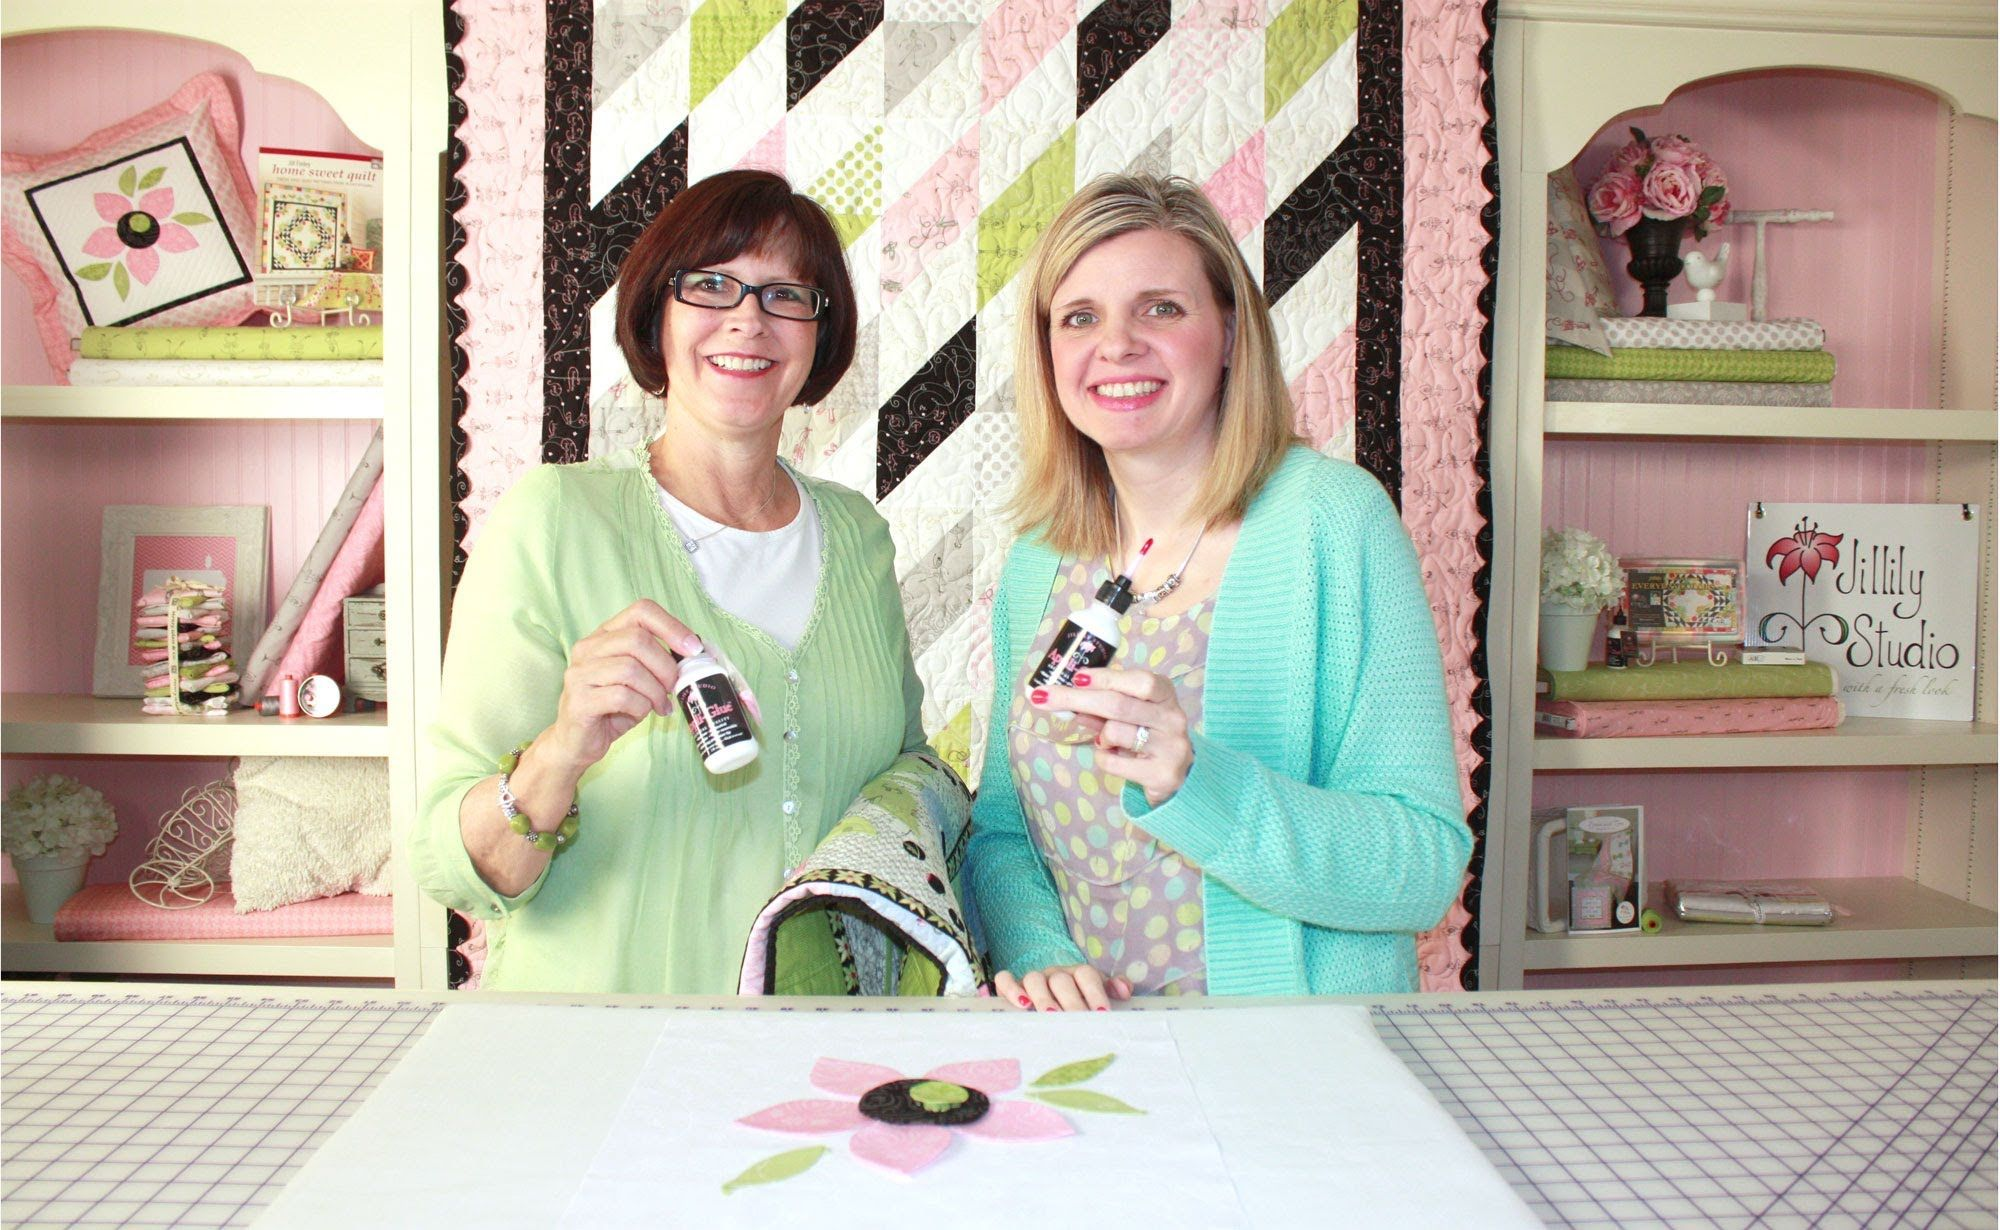 How to use appli glue by jill finley of jillily studio watch and